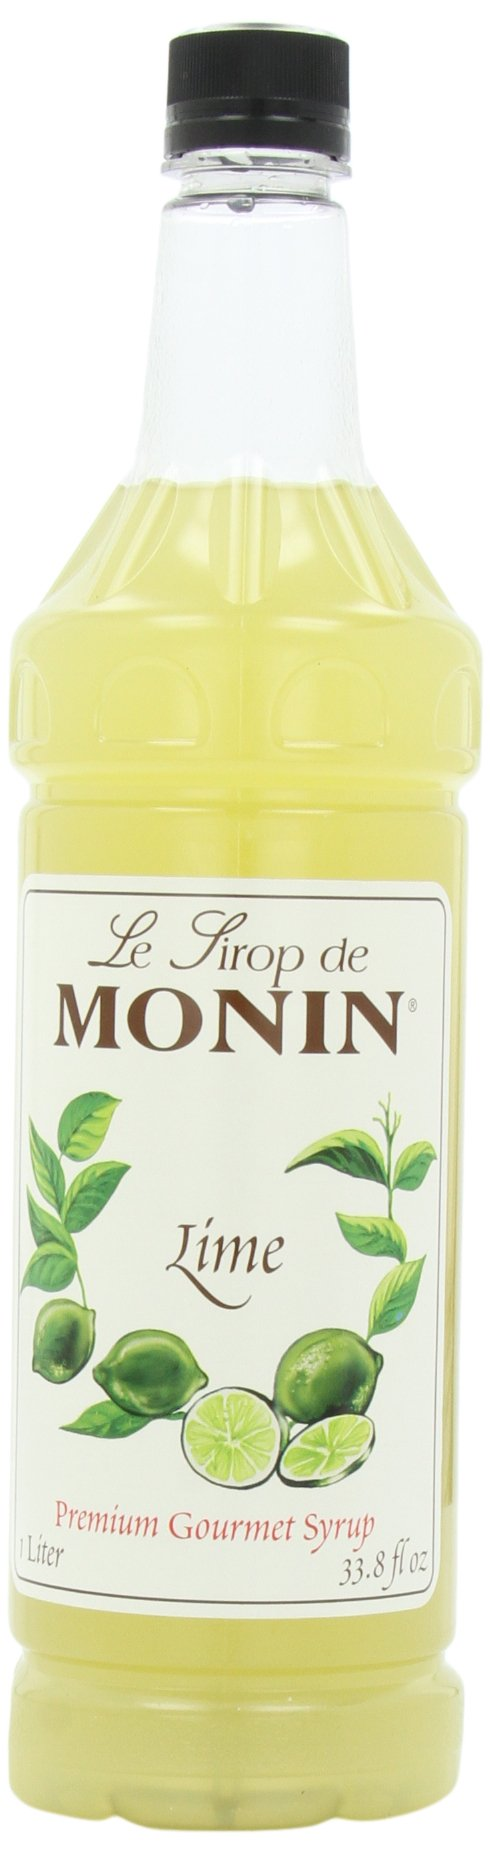 Monin Flavored Syrup, Lime, 33.8-Ounce Plastic Bottles (Pack of 4) by Monin